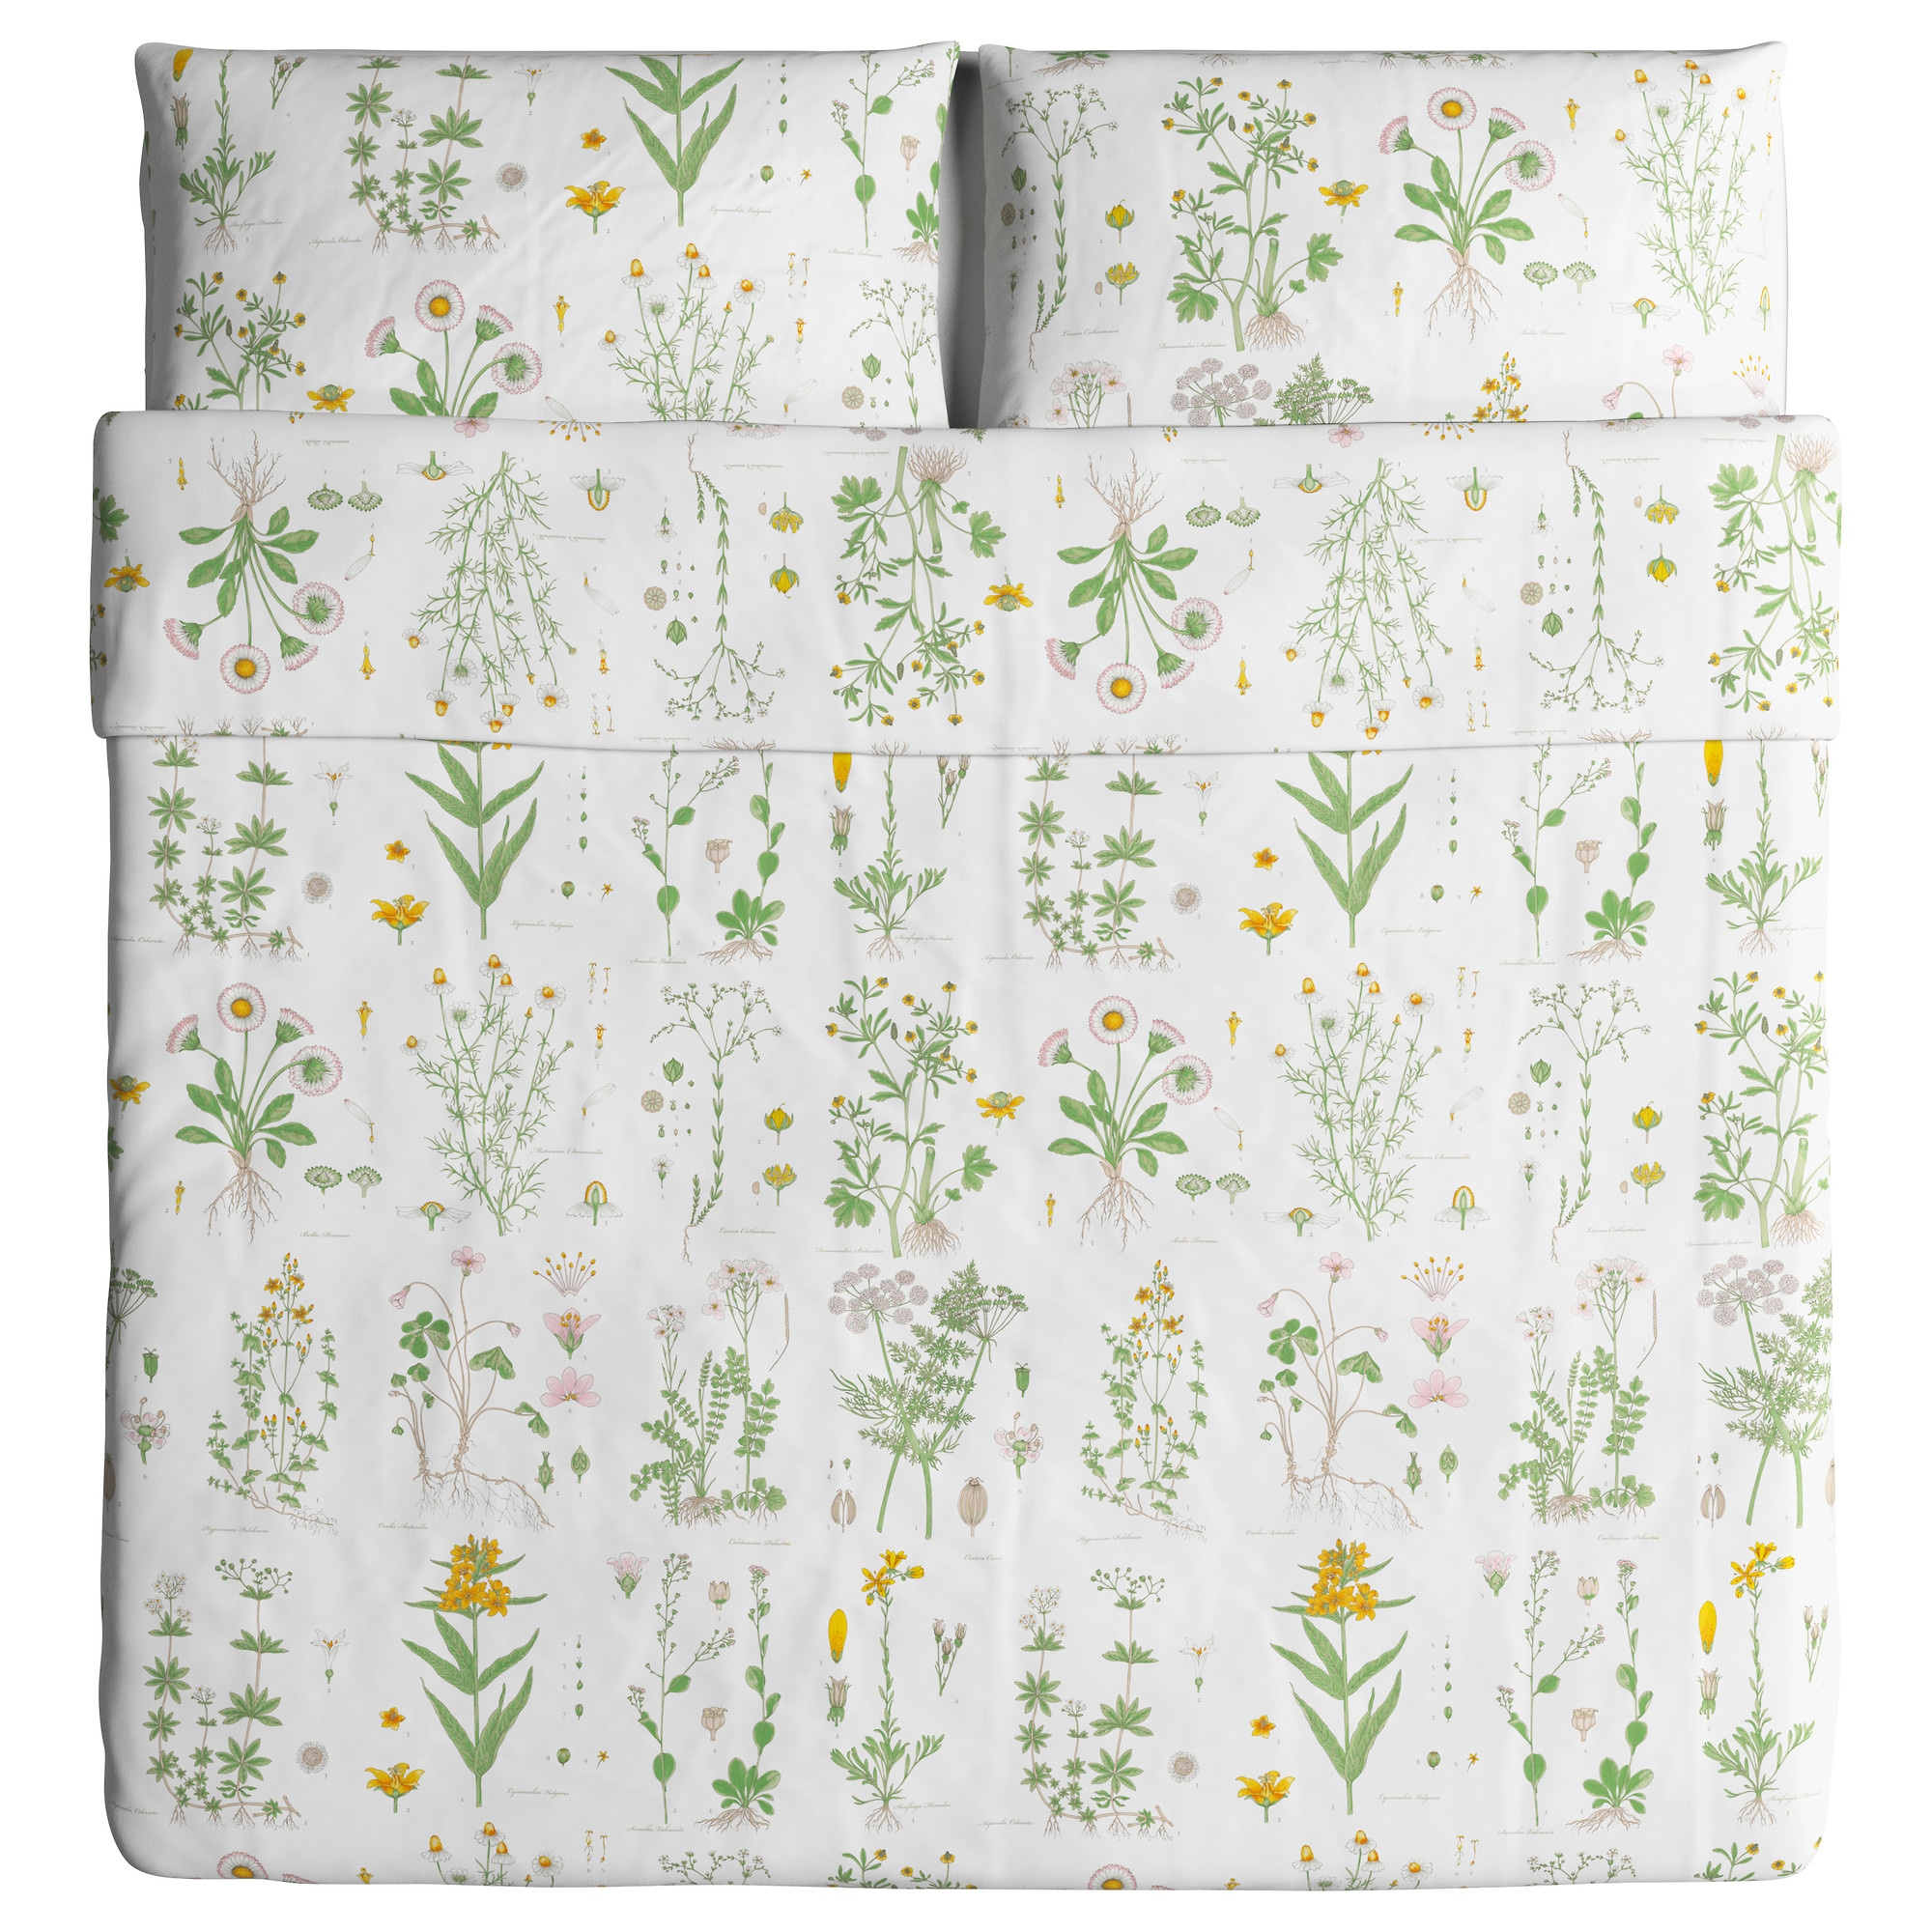 strandkrypa duvet cover and pillowcases fullqueen doublequeen ikea